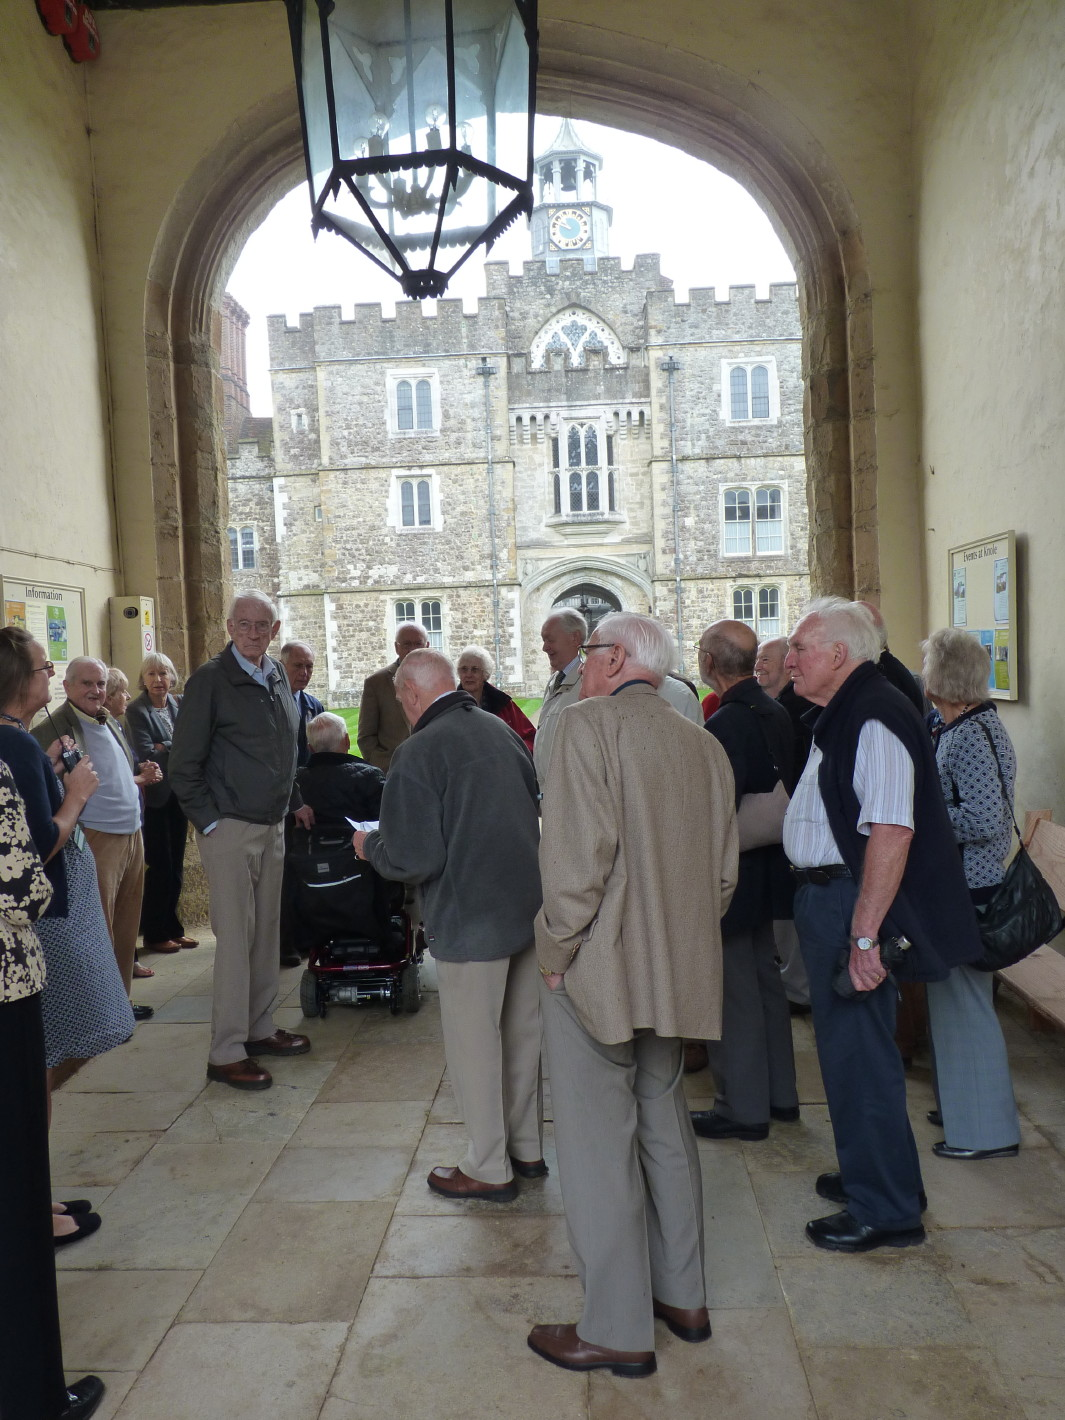 Arriving for tour of Knole House